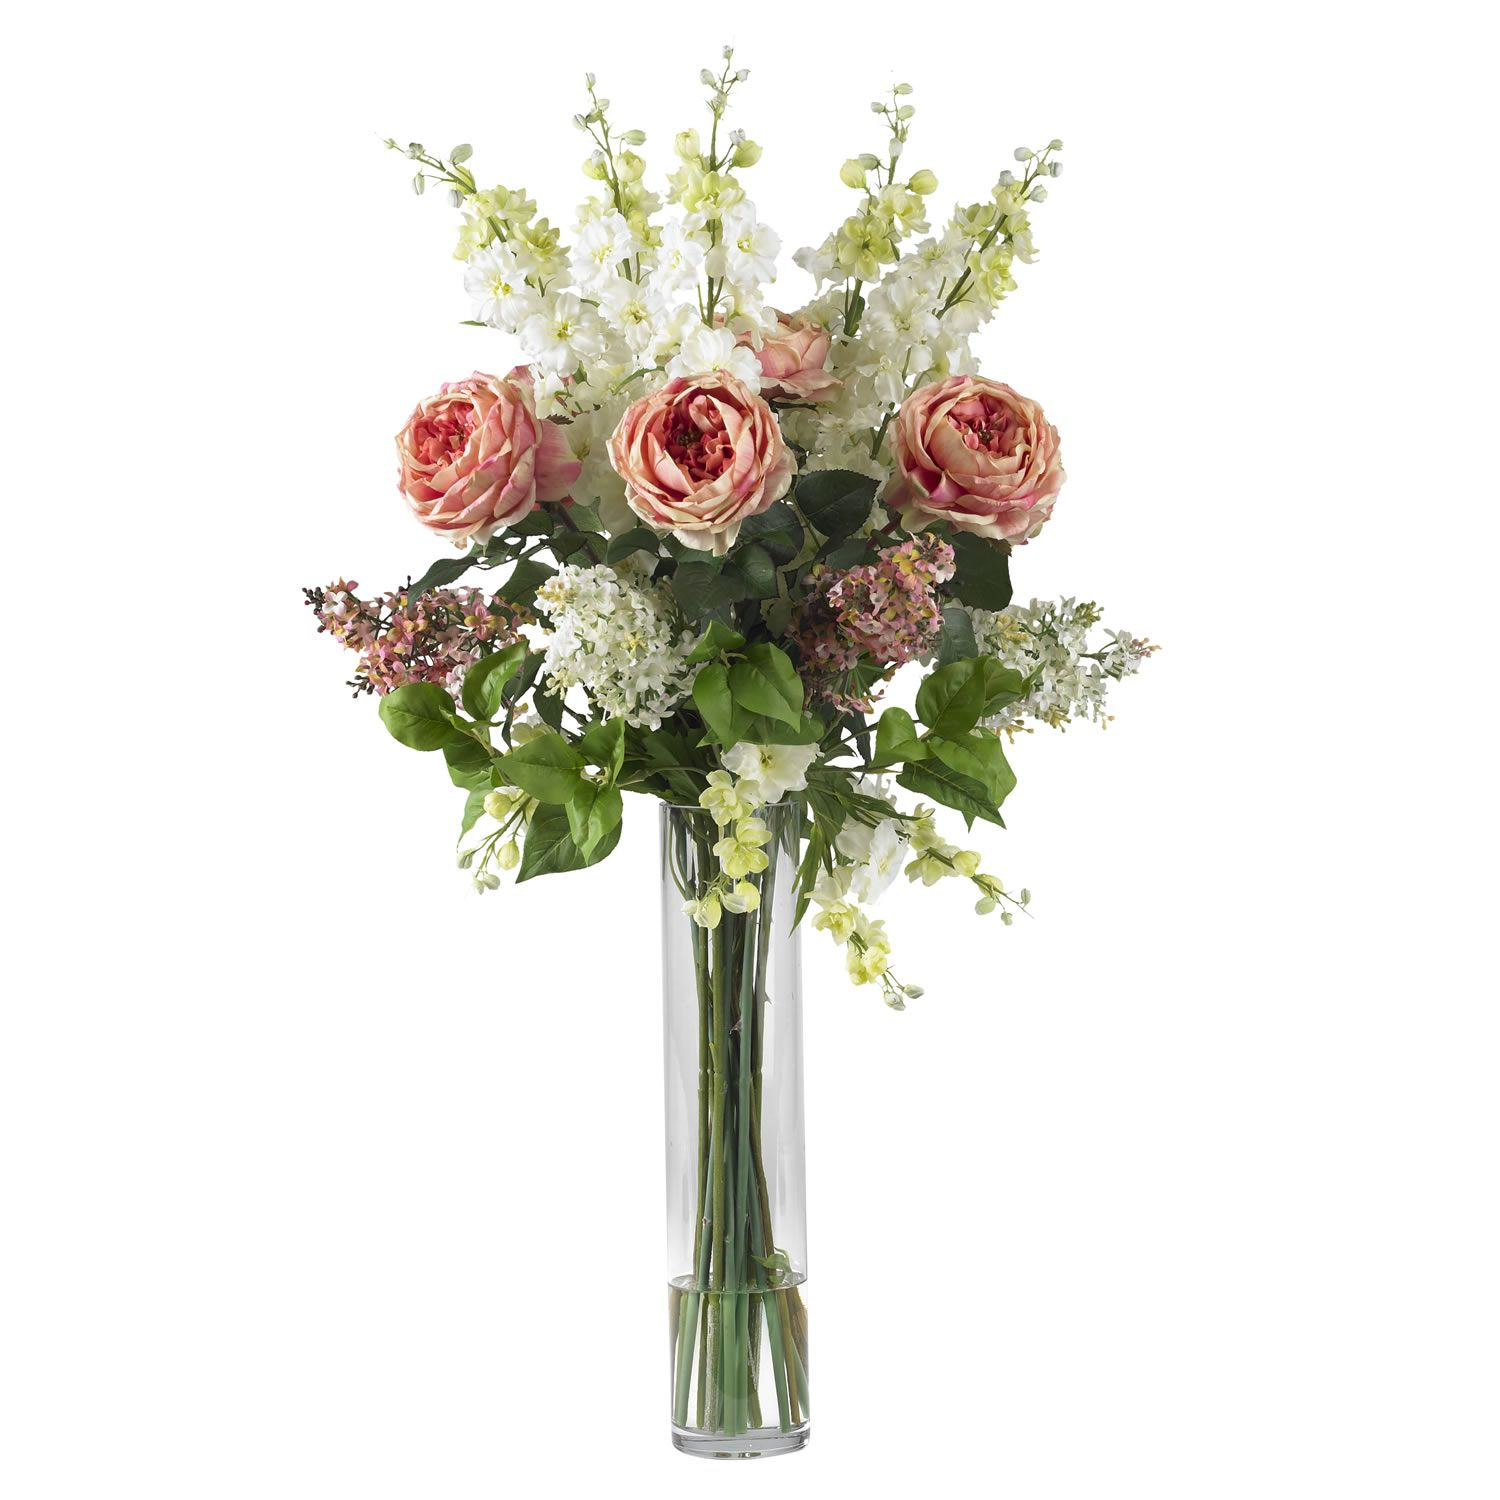 Celebrate The Warm Weather With This Incredible Arrangement Of Springtime Col Fake Flower Arrangements Artificial Flower Arrangements Rose Flower Arrangements